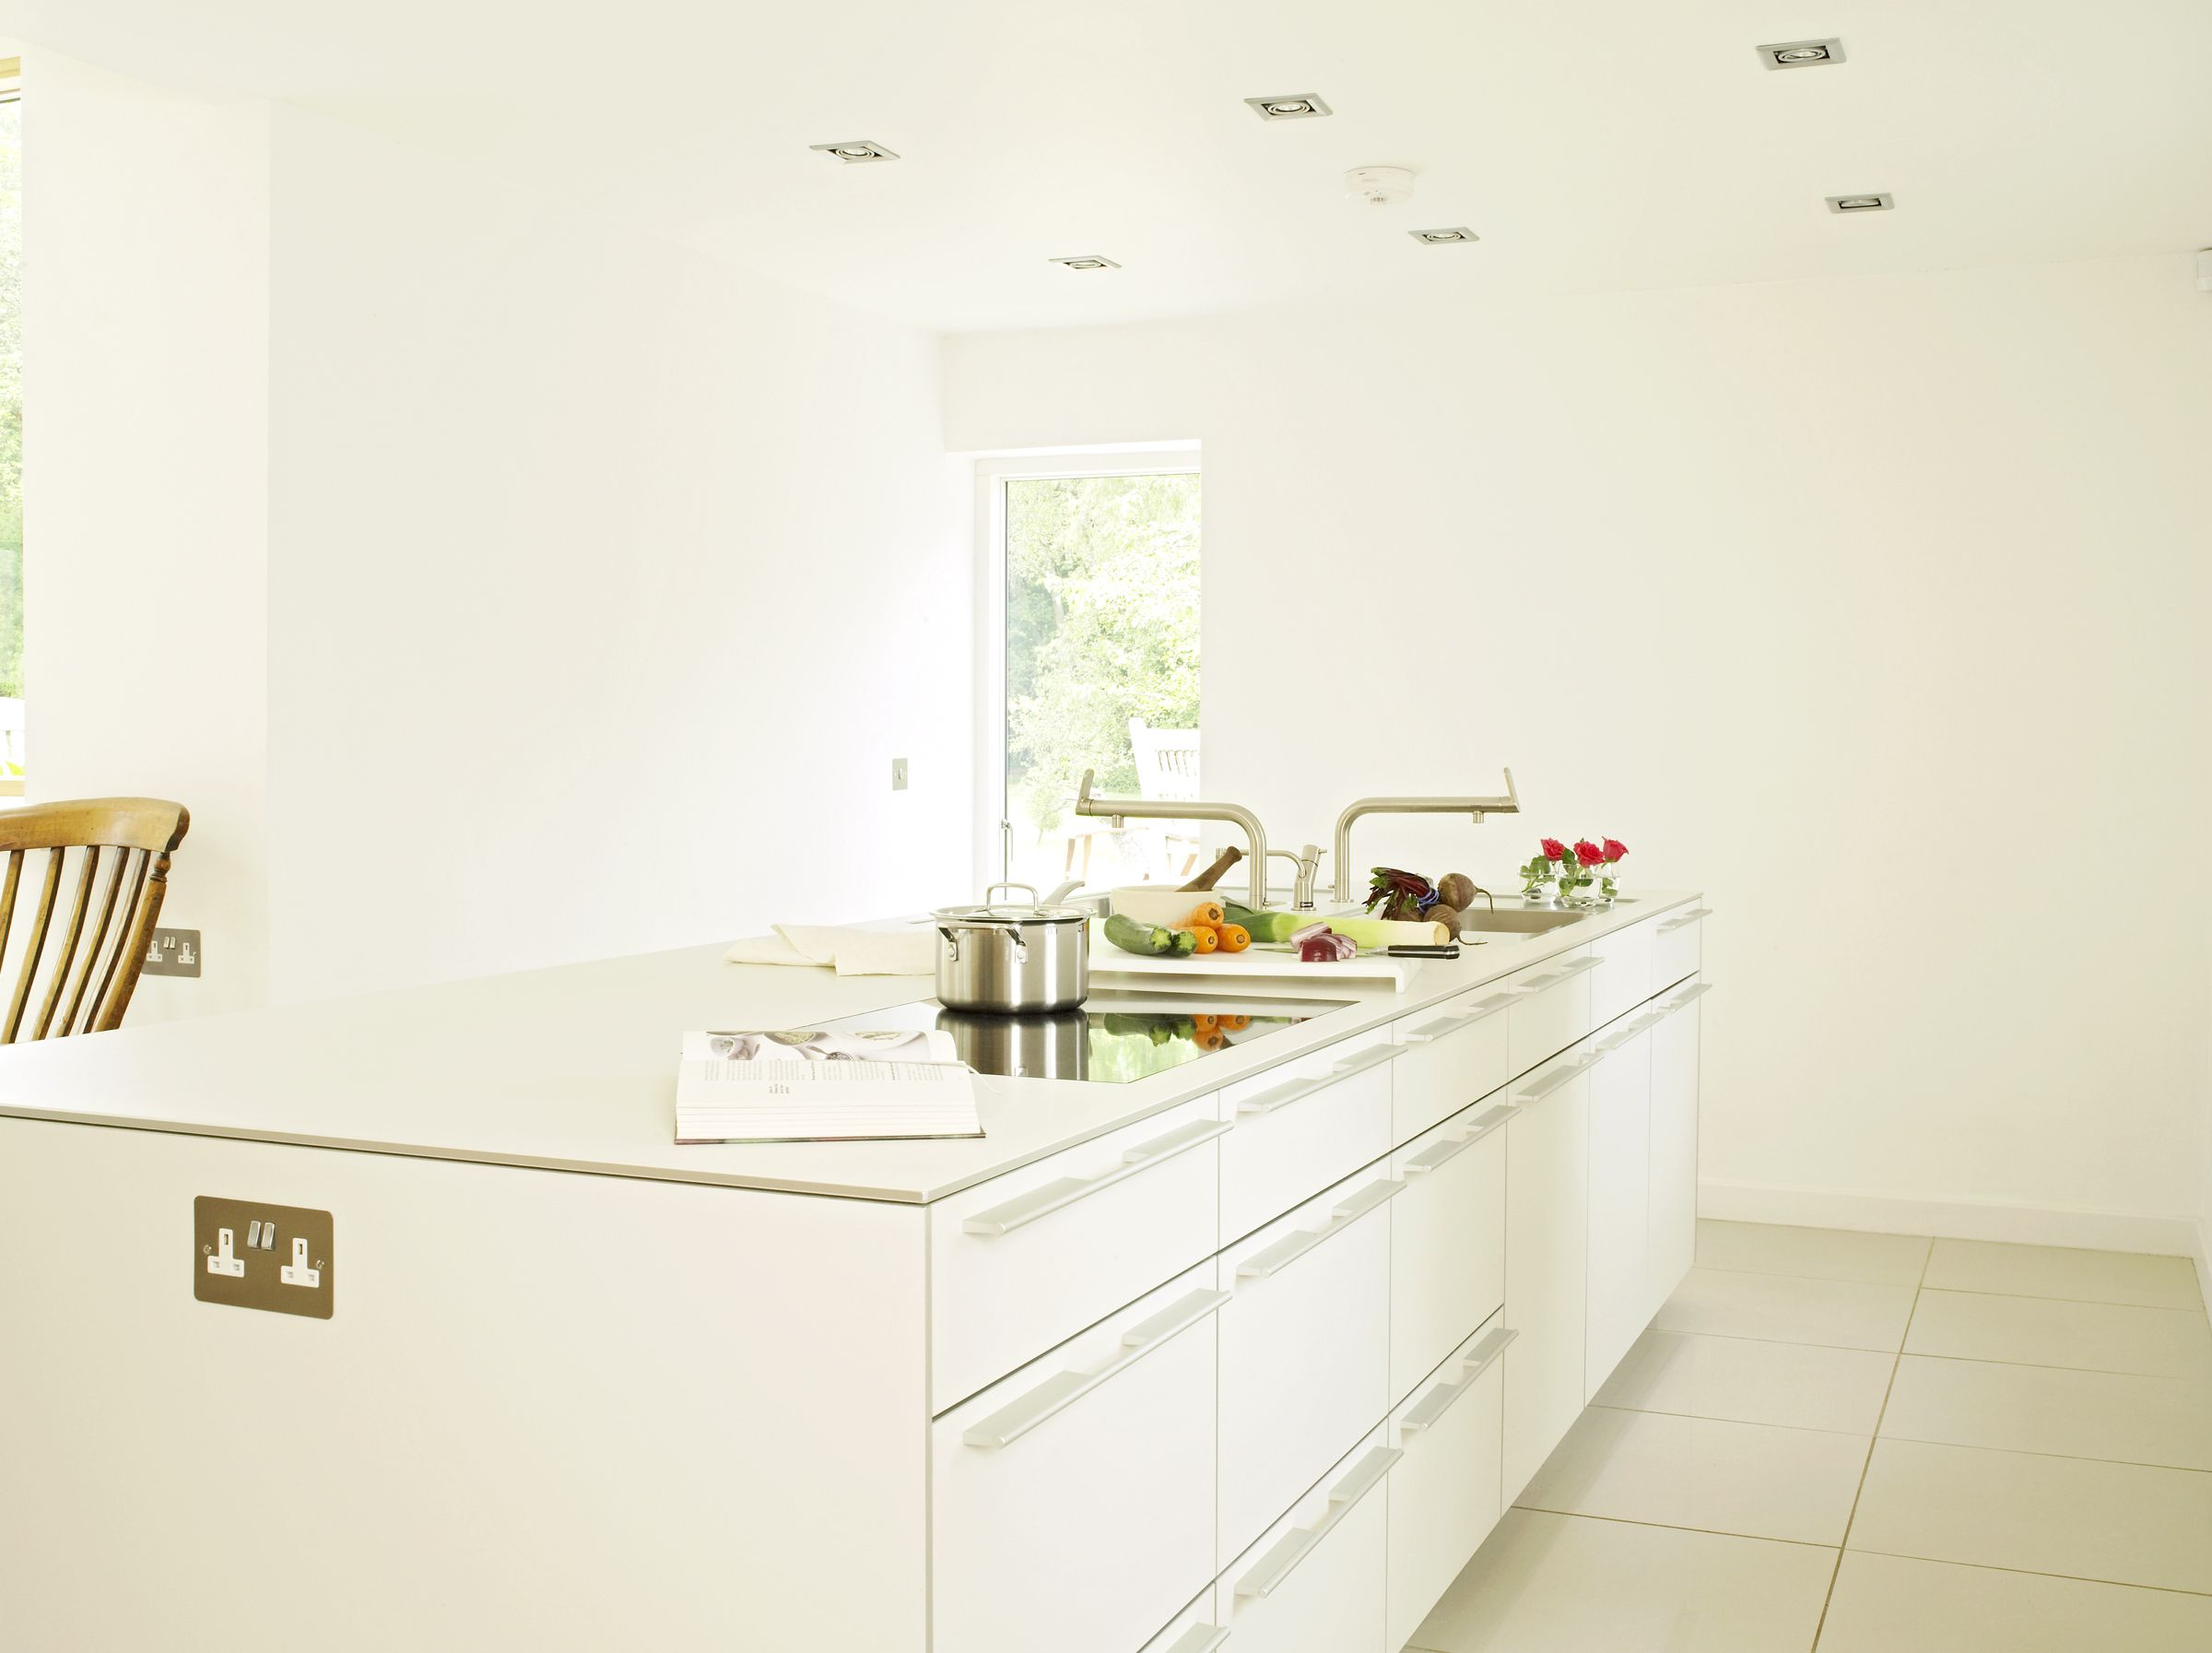 Bulthaup Wiesbaden depending on preference the bulthaup b3 kitchen can come with